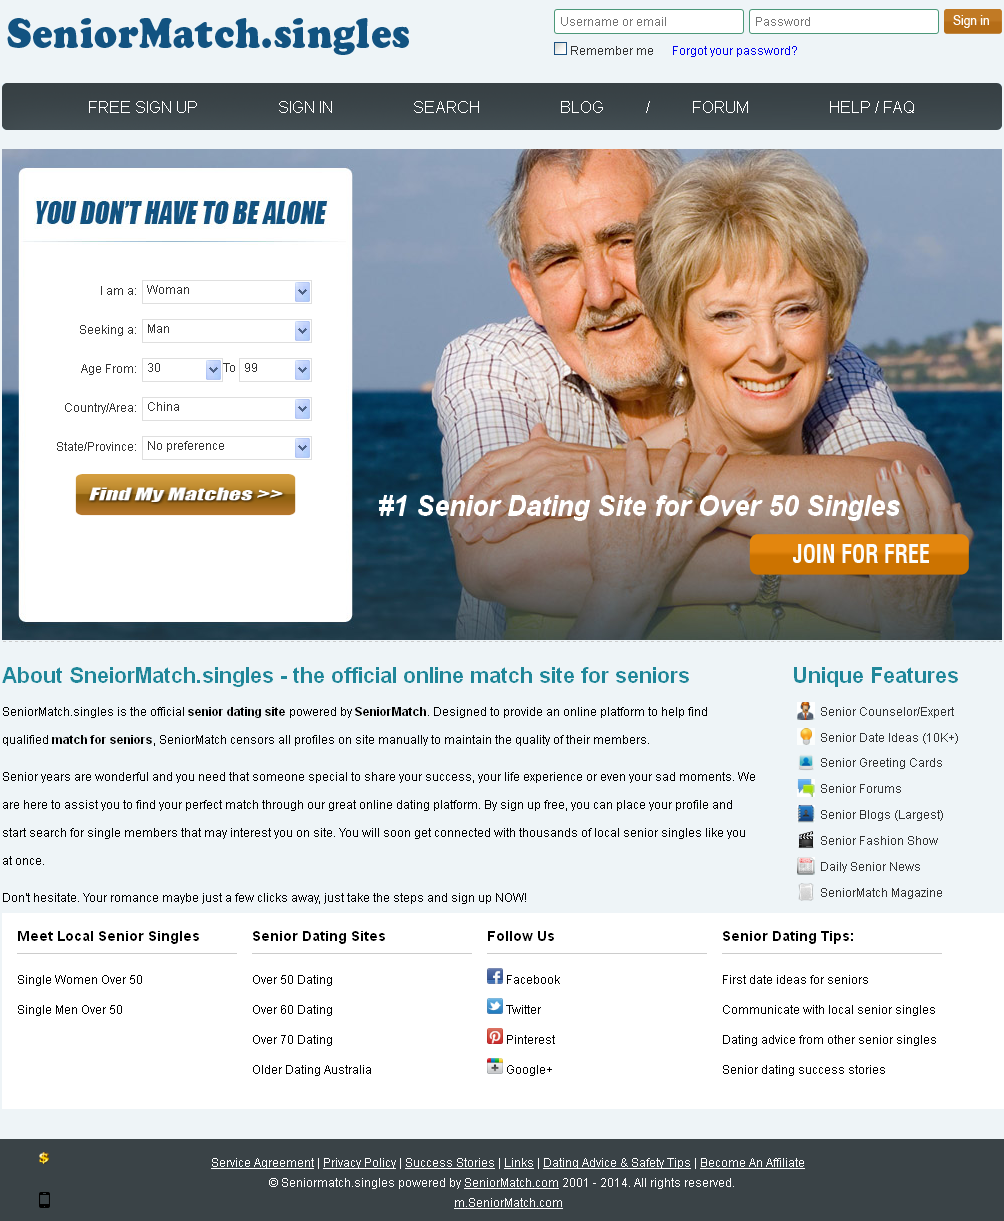 zaraza senior dating site Senior next is, according to industry experts at seniordatingexpertcom, the #4 ranked senior dating site of 2016 be a part of our big community we make it easy to interact with new people, make new friends, send free flirts, and browse other users photos all your profile details are 100% private and safe.